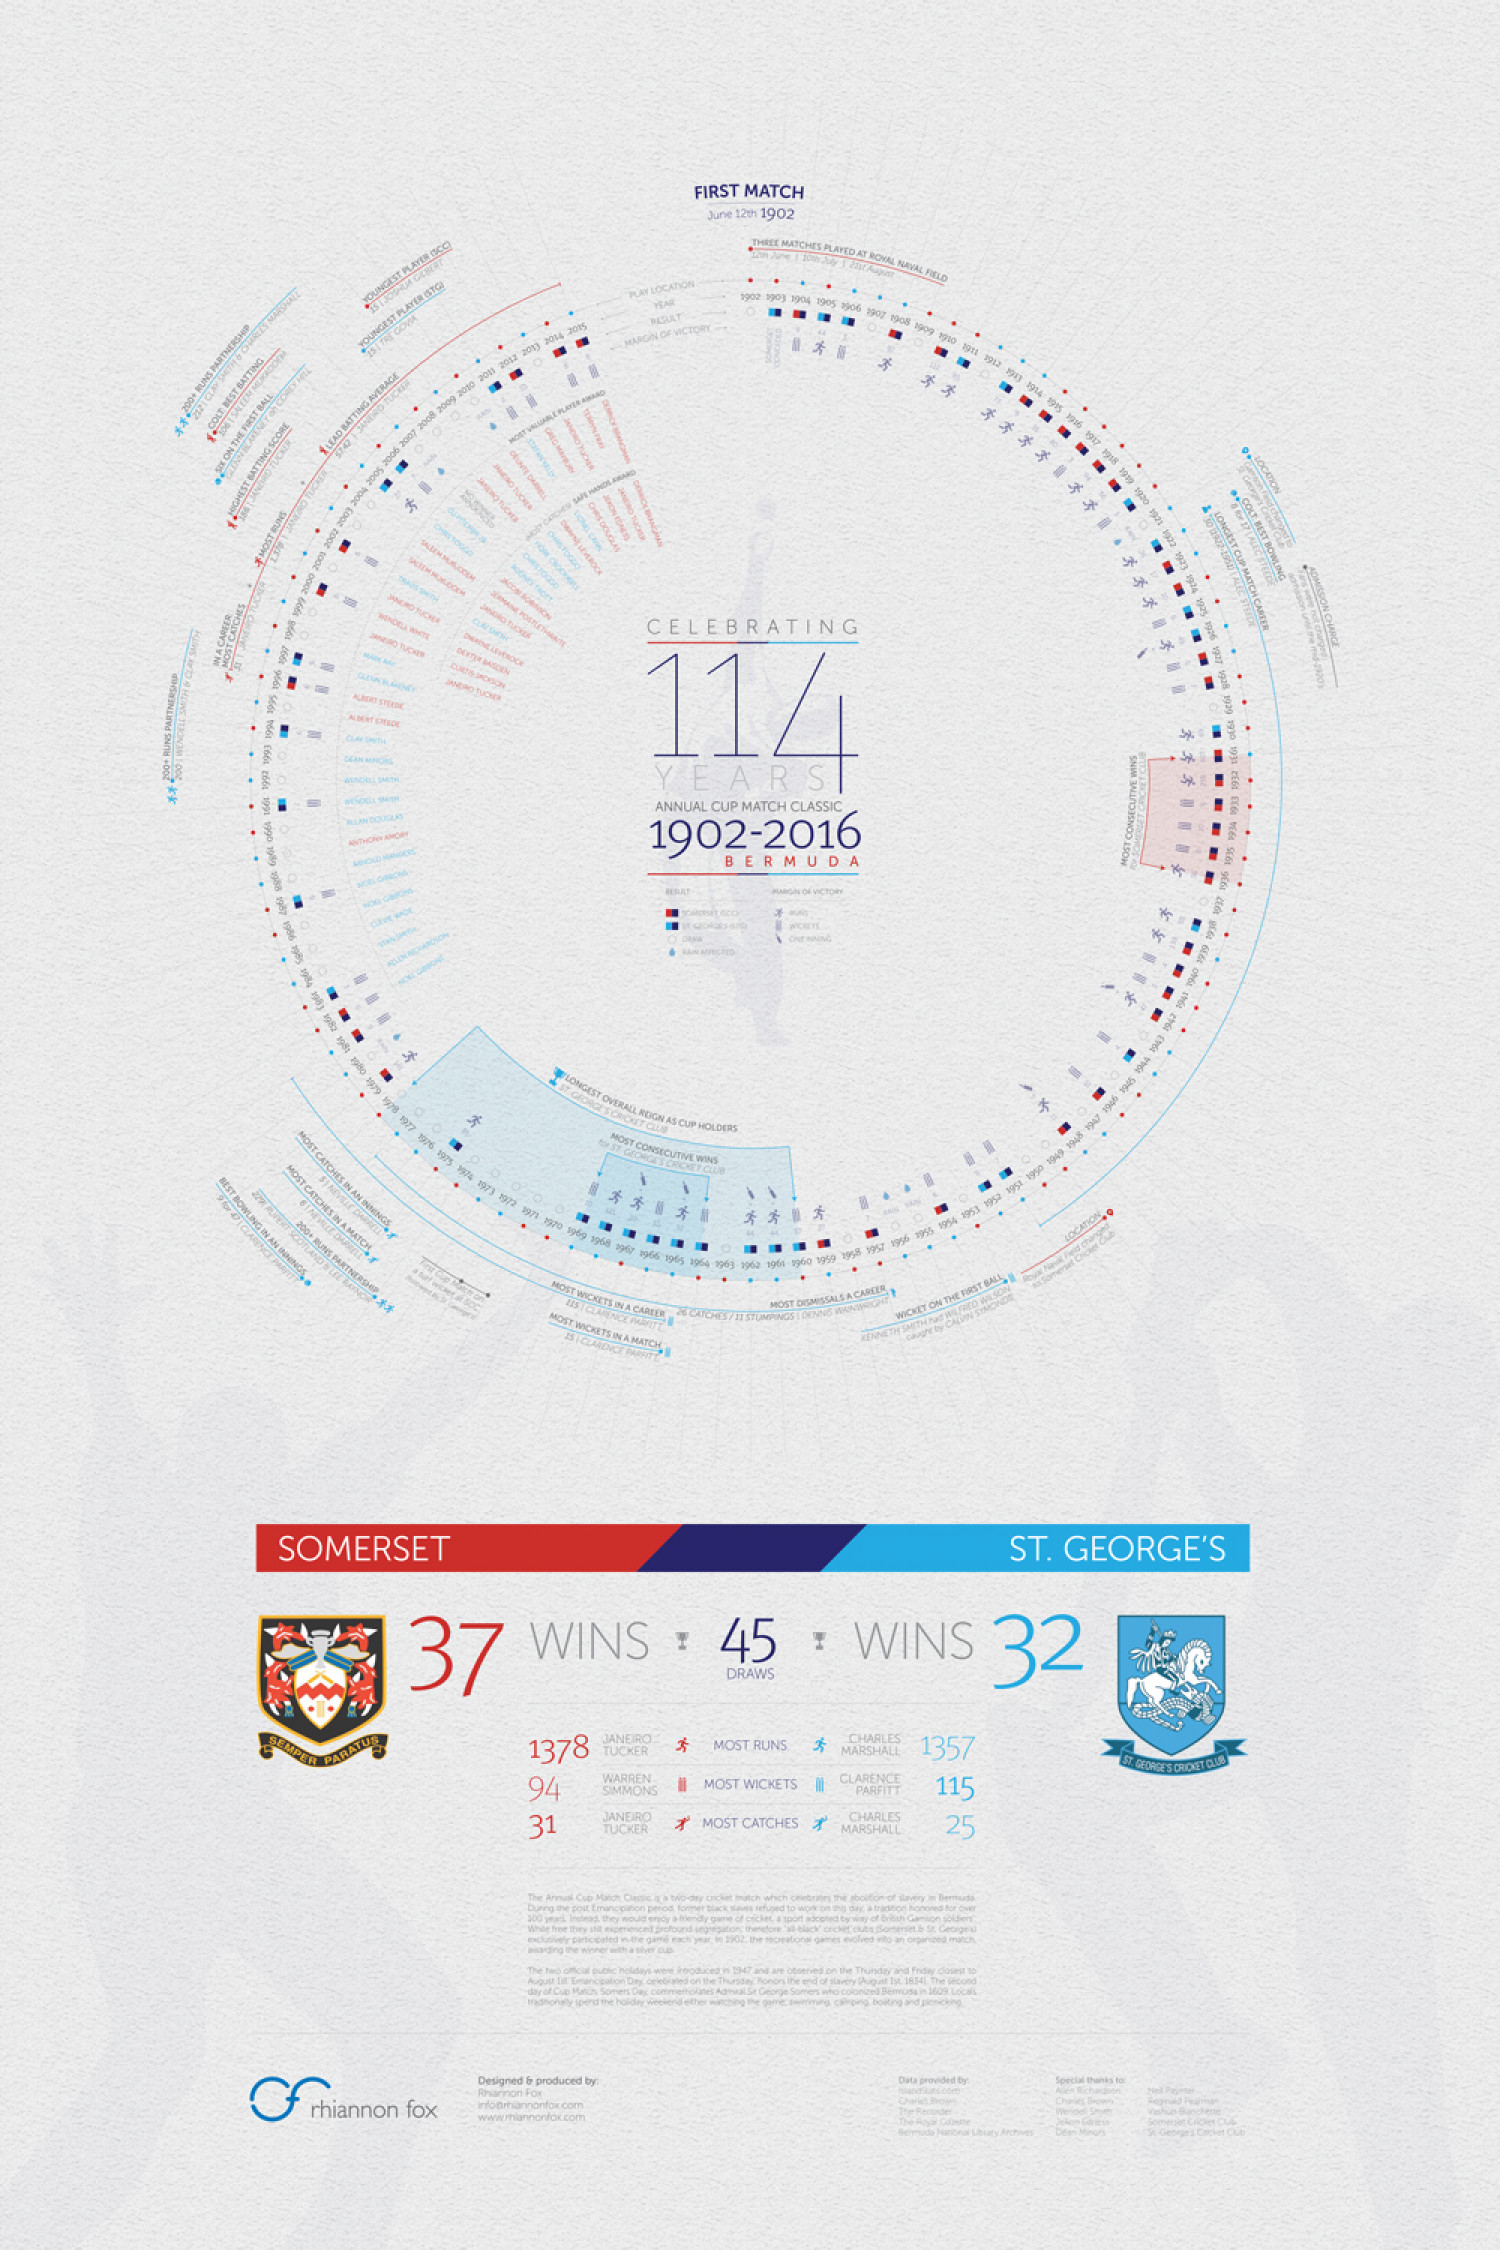 CELEBRATING 114 YEARS OF THE ANNUAL CUP MATCH CLASSIC Infographic